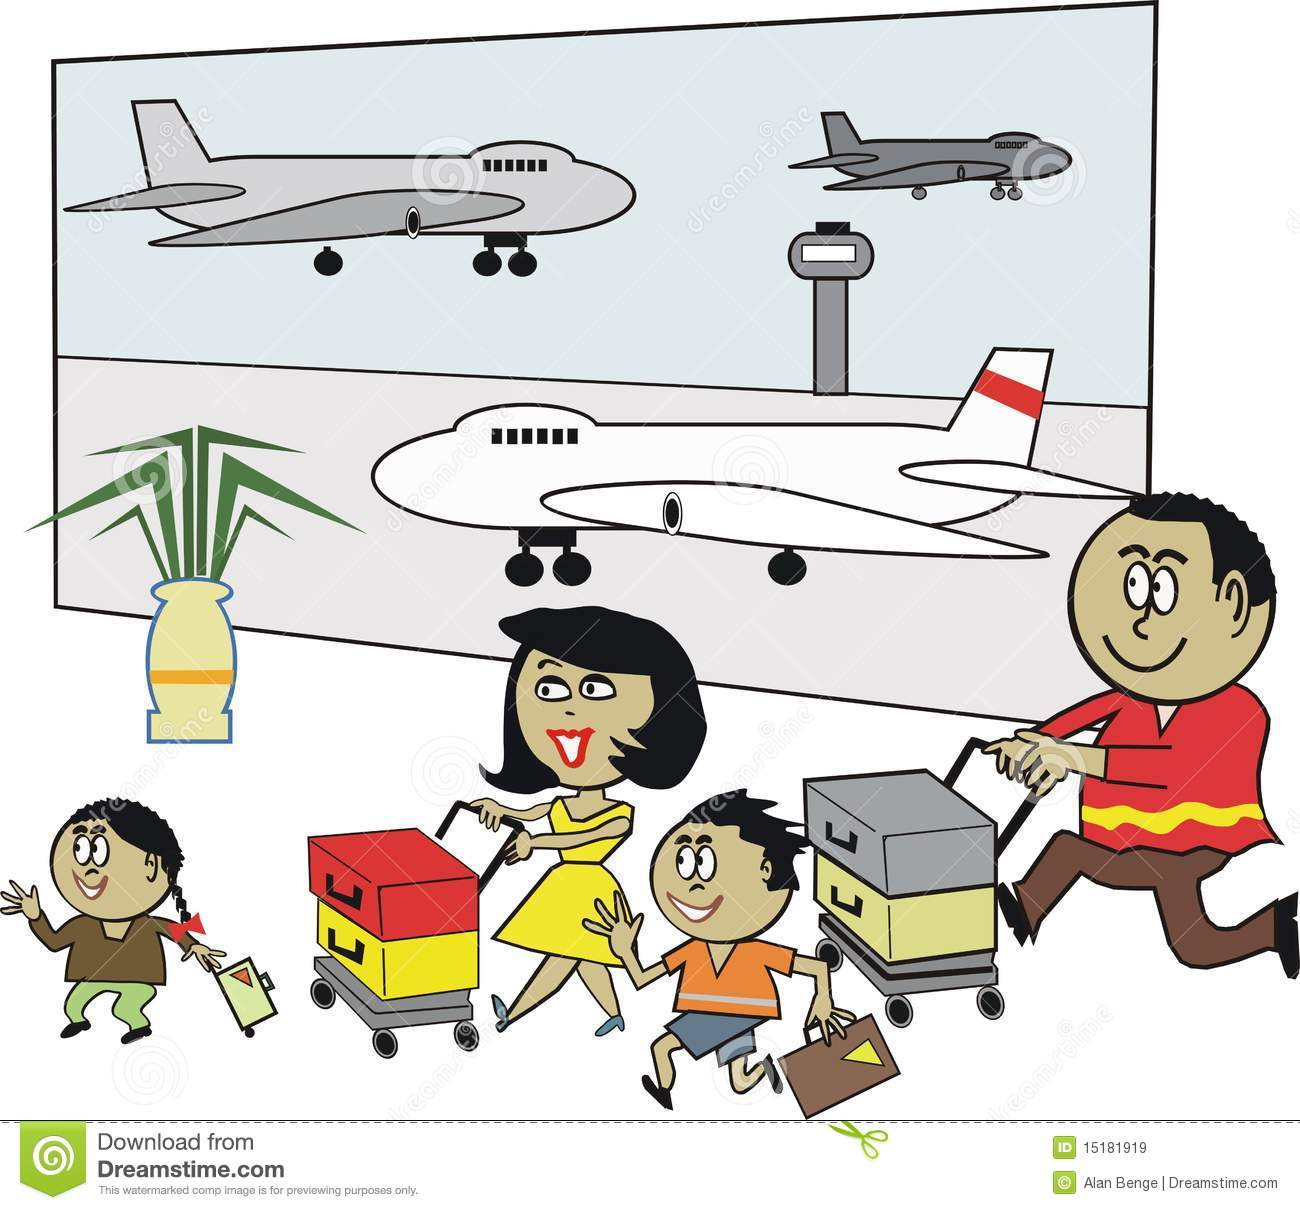 fueling areal cartoon. Airport clipart animated